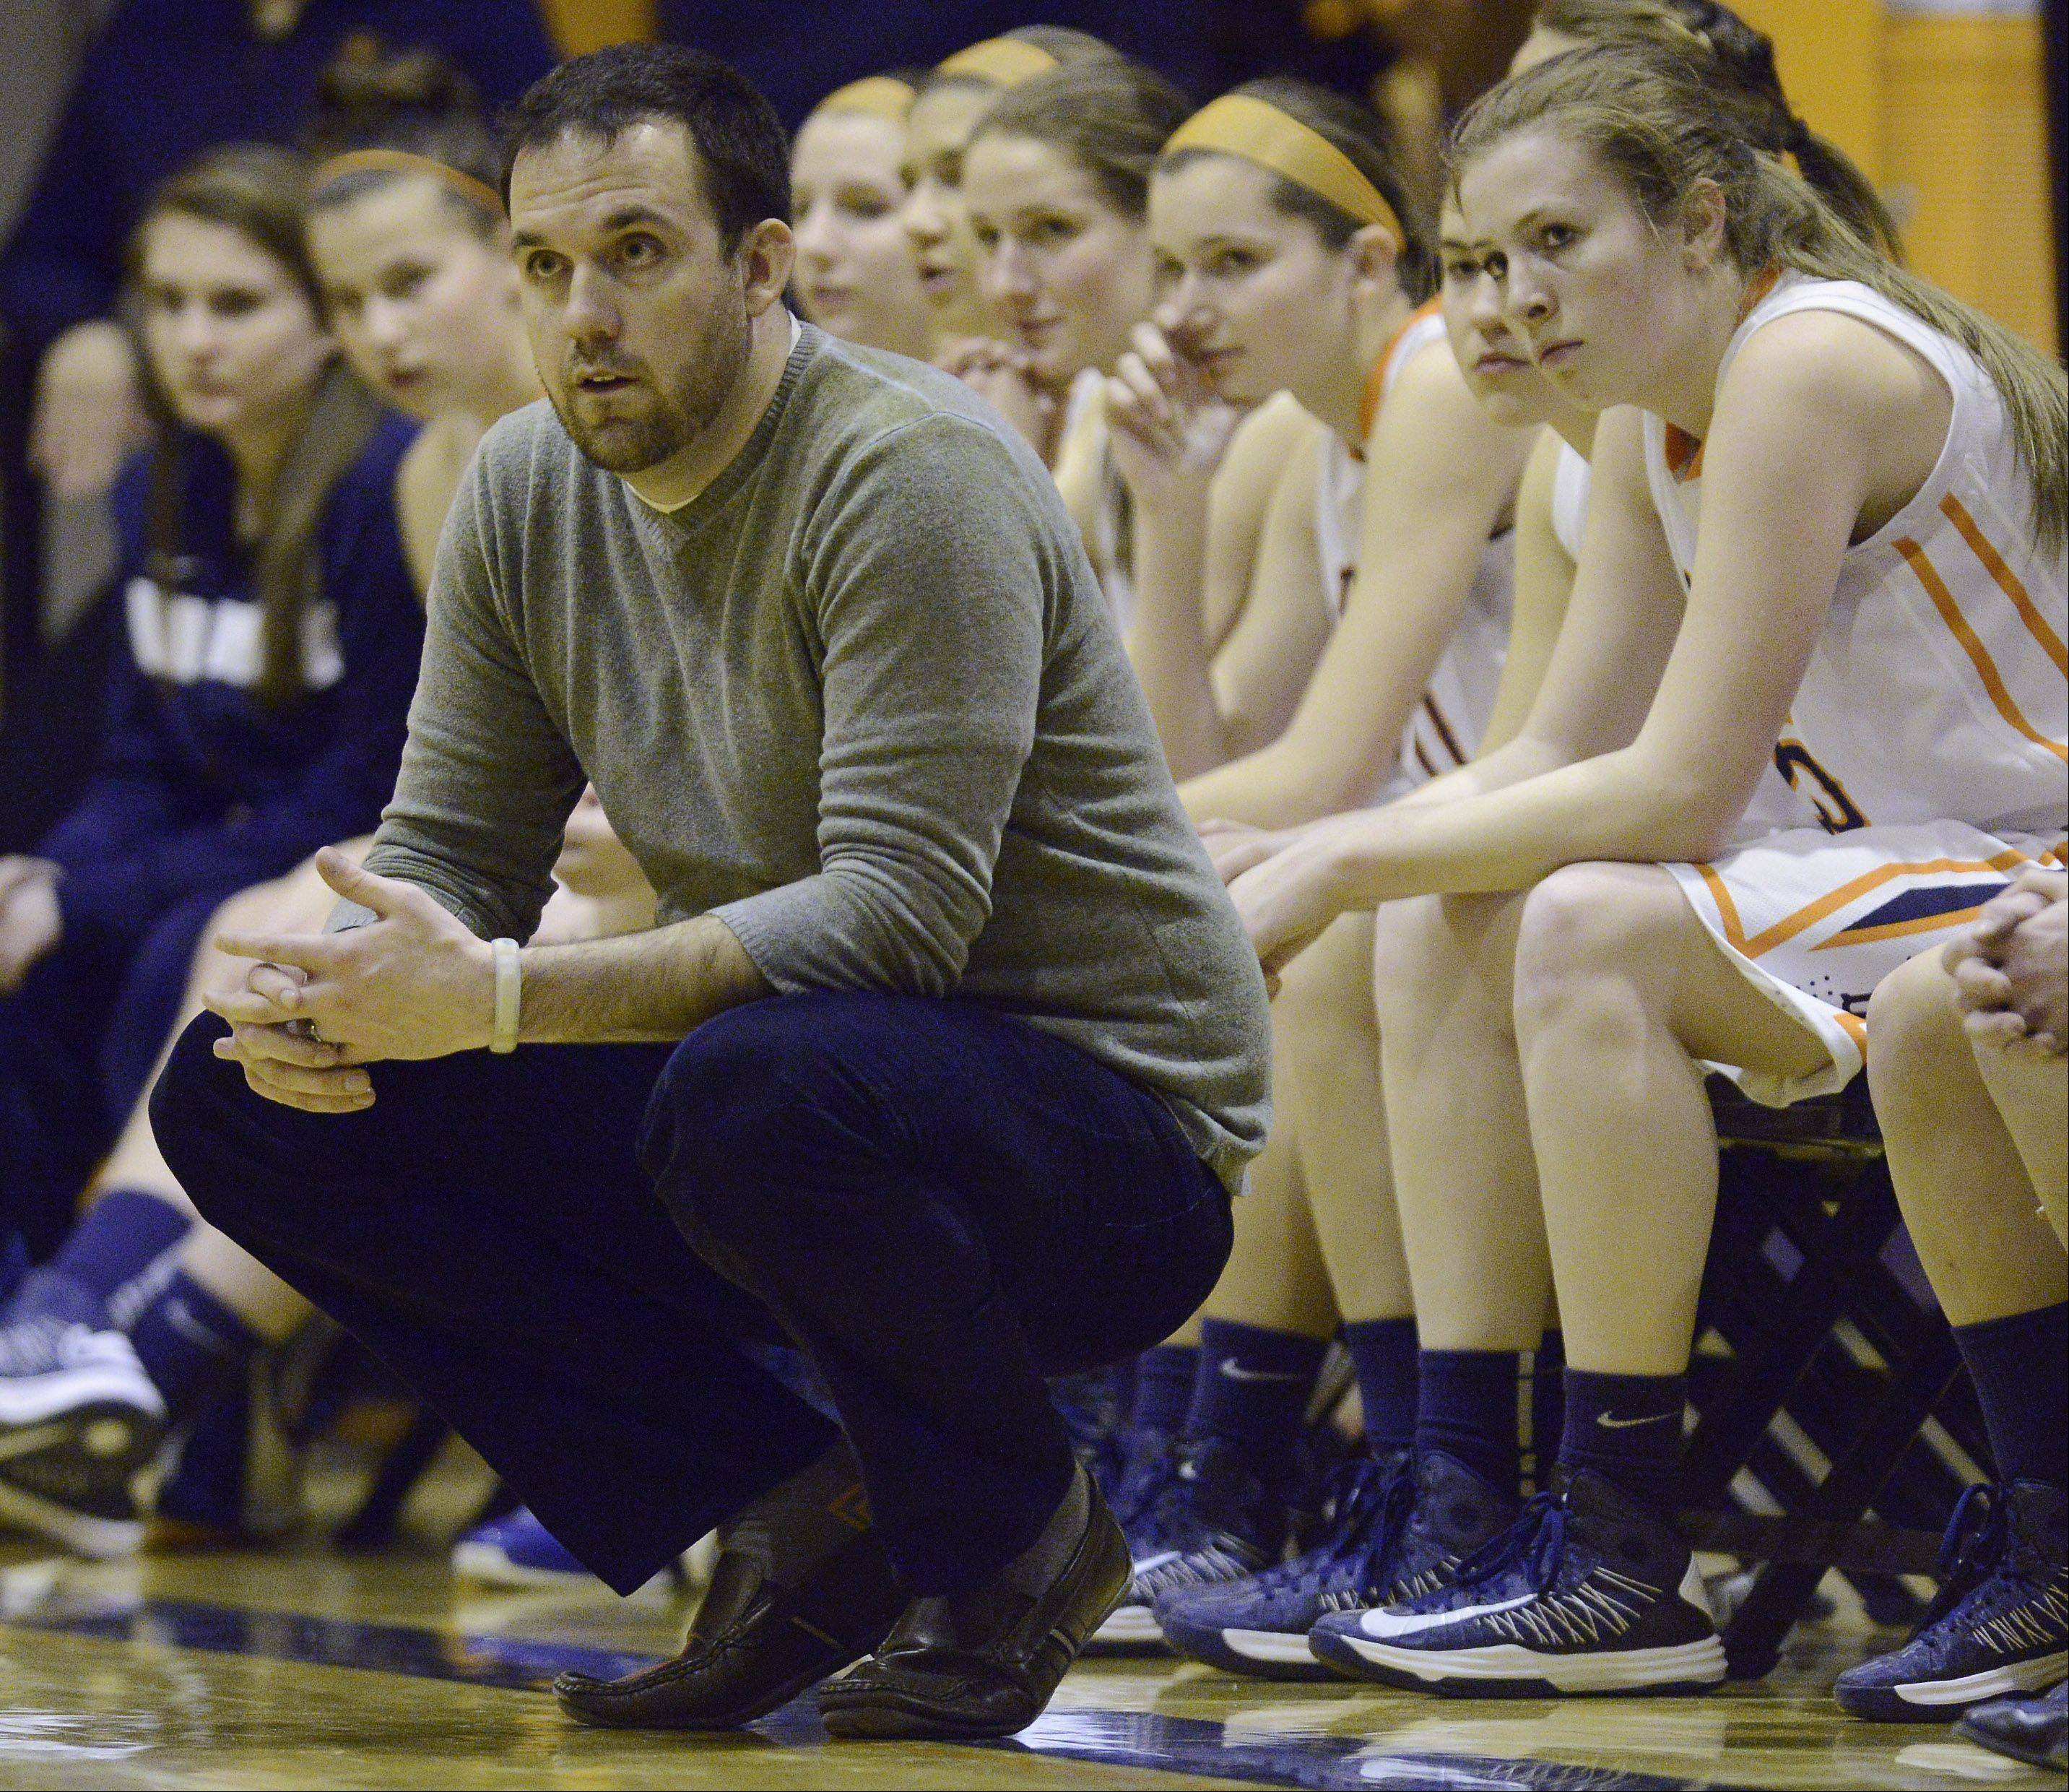 Buffalo Grove girls basketball coach Steve Kolodziej leads his team during Wednesday's game against Rolling Meadows.